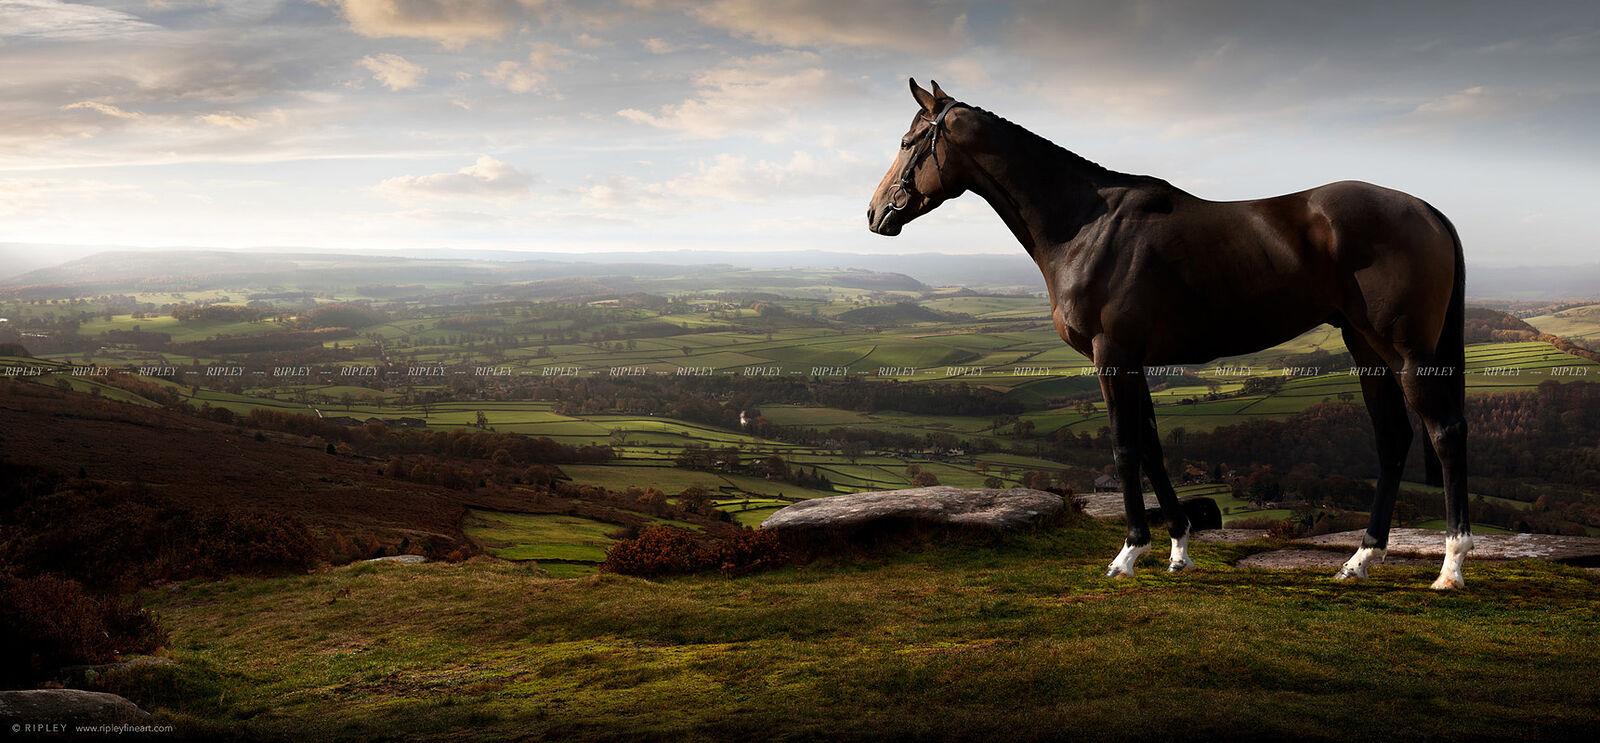 Racehorse in an English Landscape